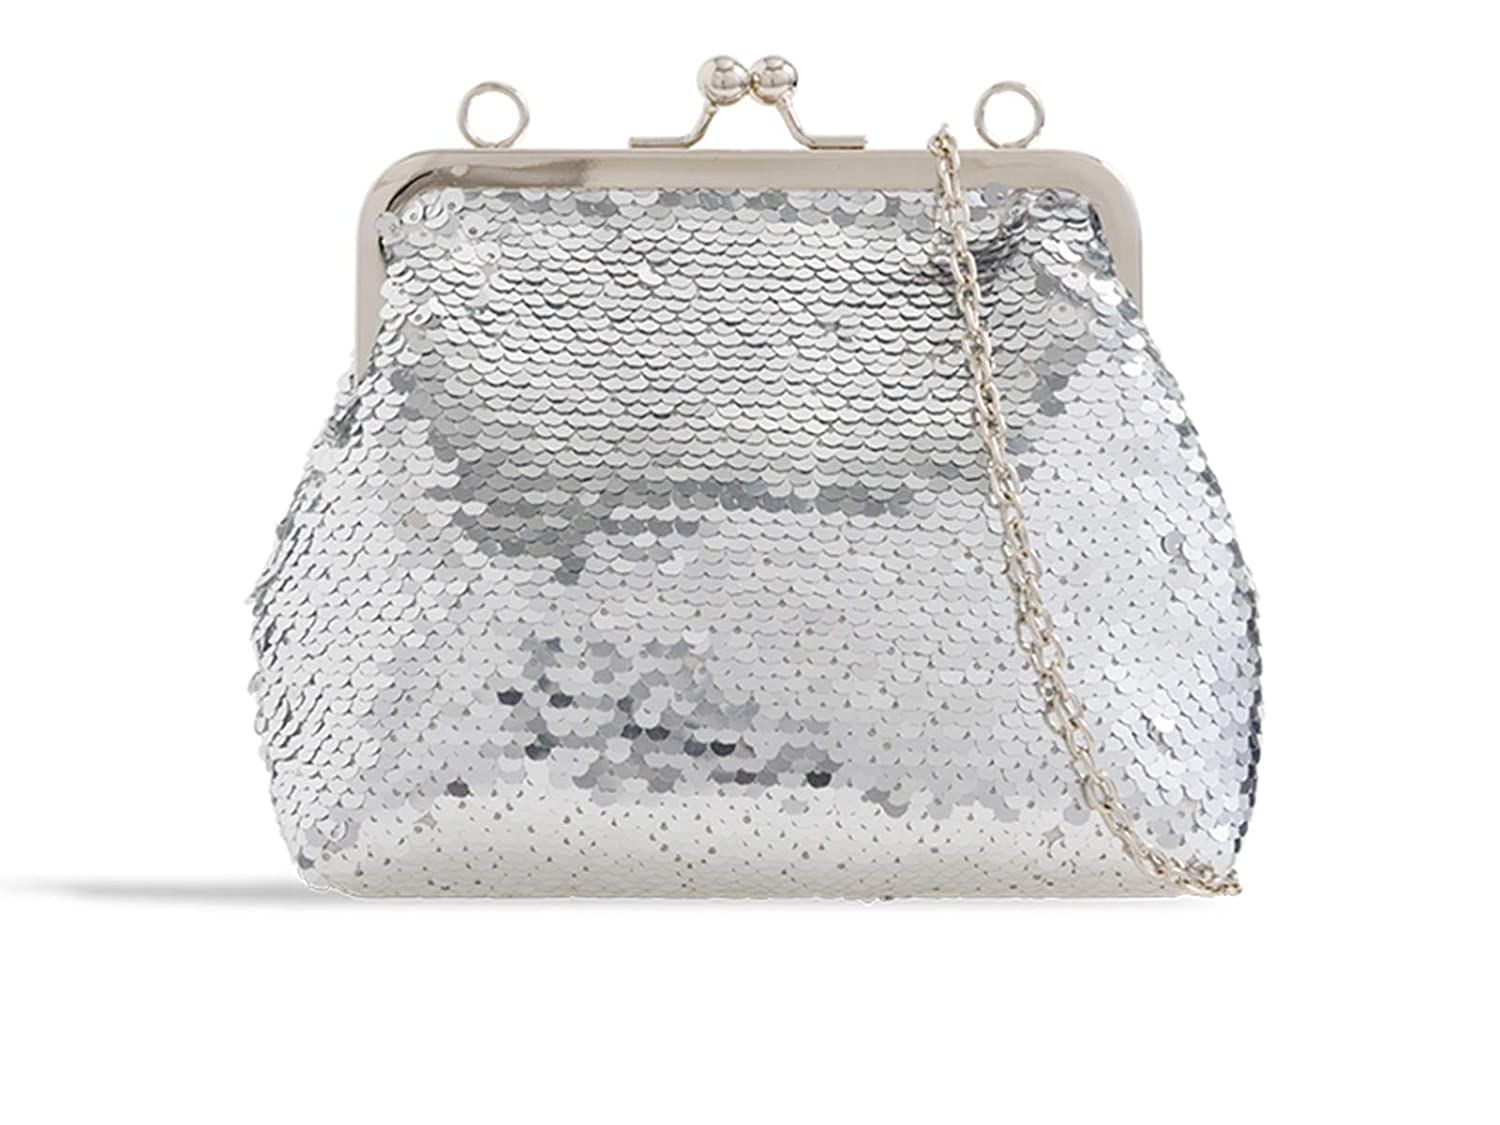 LeahWard Women/'s Sequin Kisslock Clutch Bags Small Cross Body Evening Bag Party